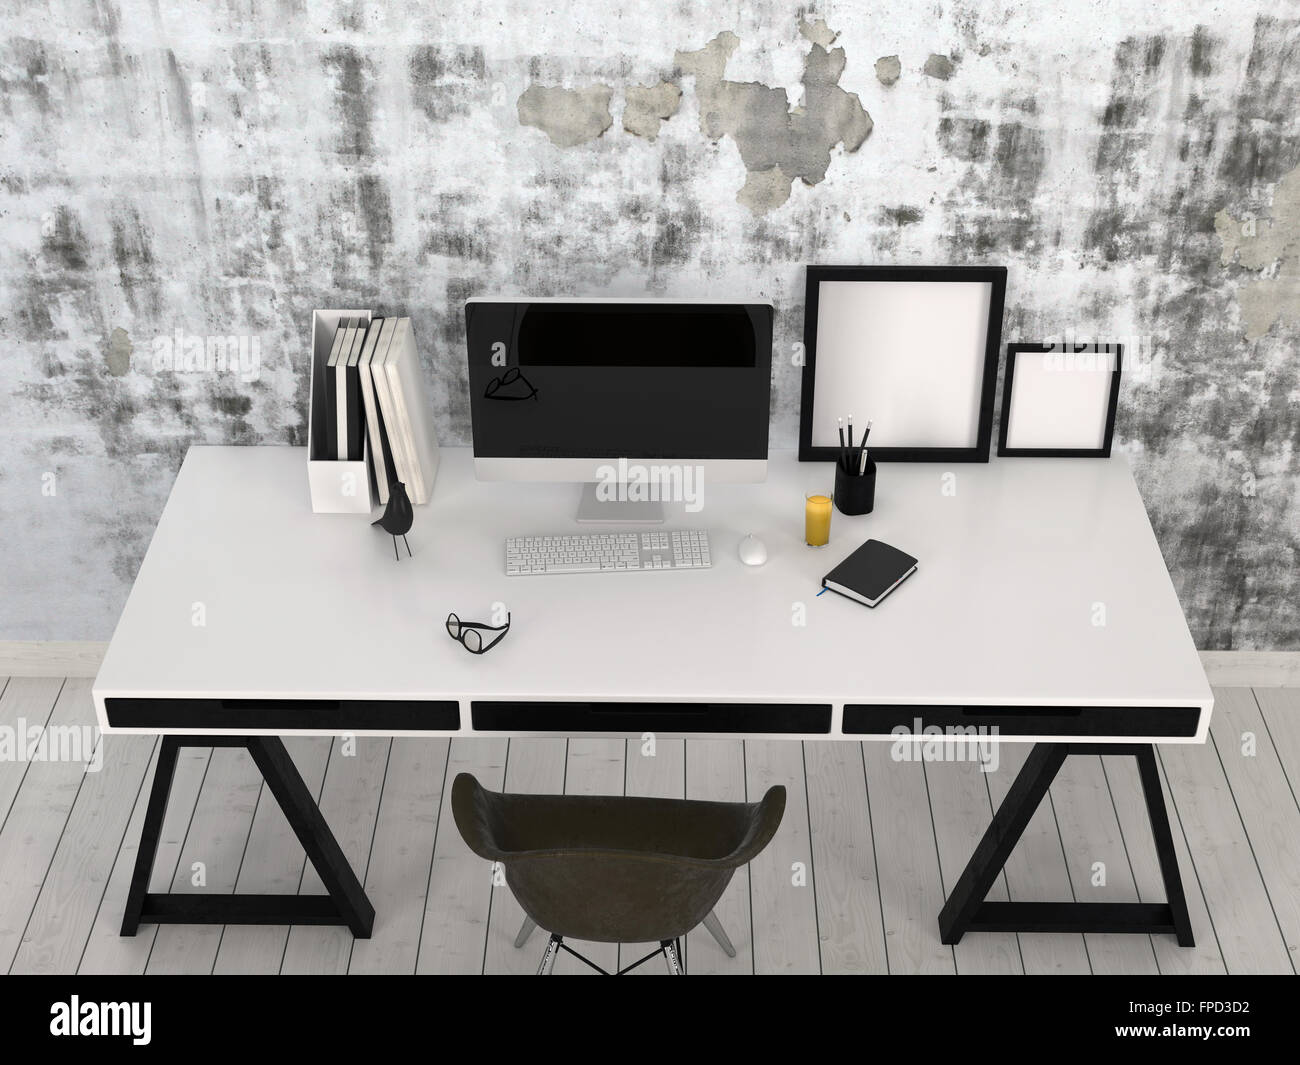 Astonishing Modern Stylish Black And White Desk On Trestles In An Office Download Free Architecture Designs Embacsunscenecom